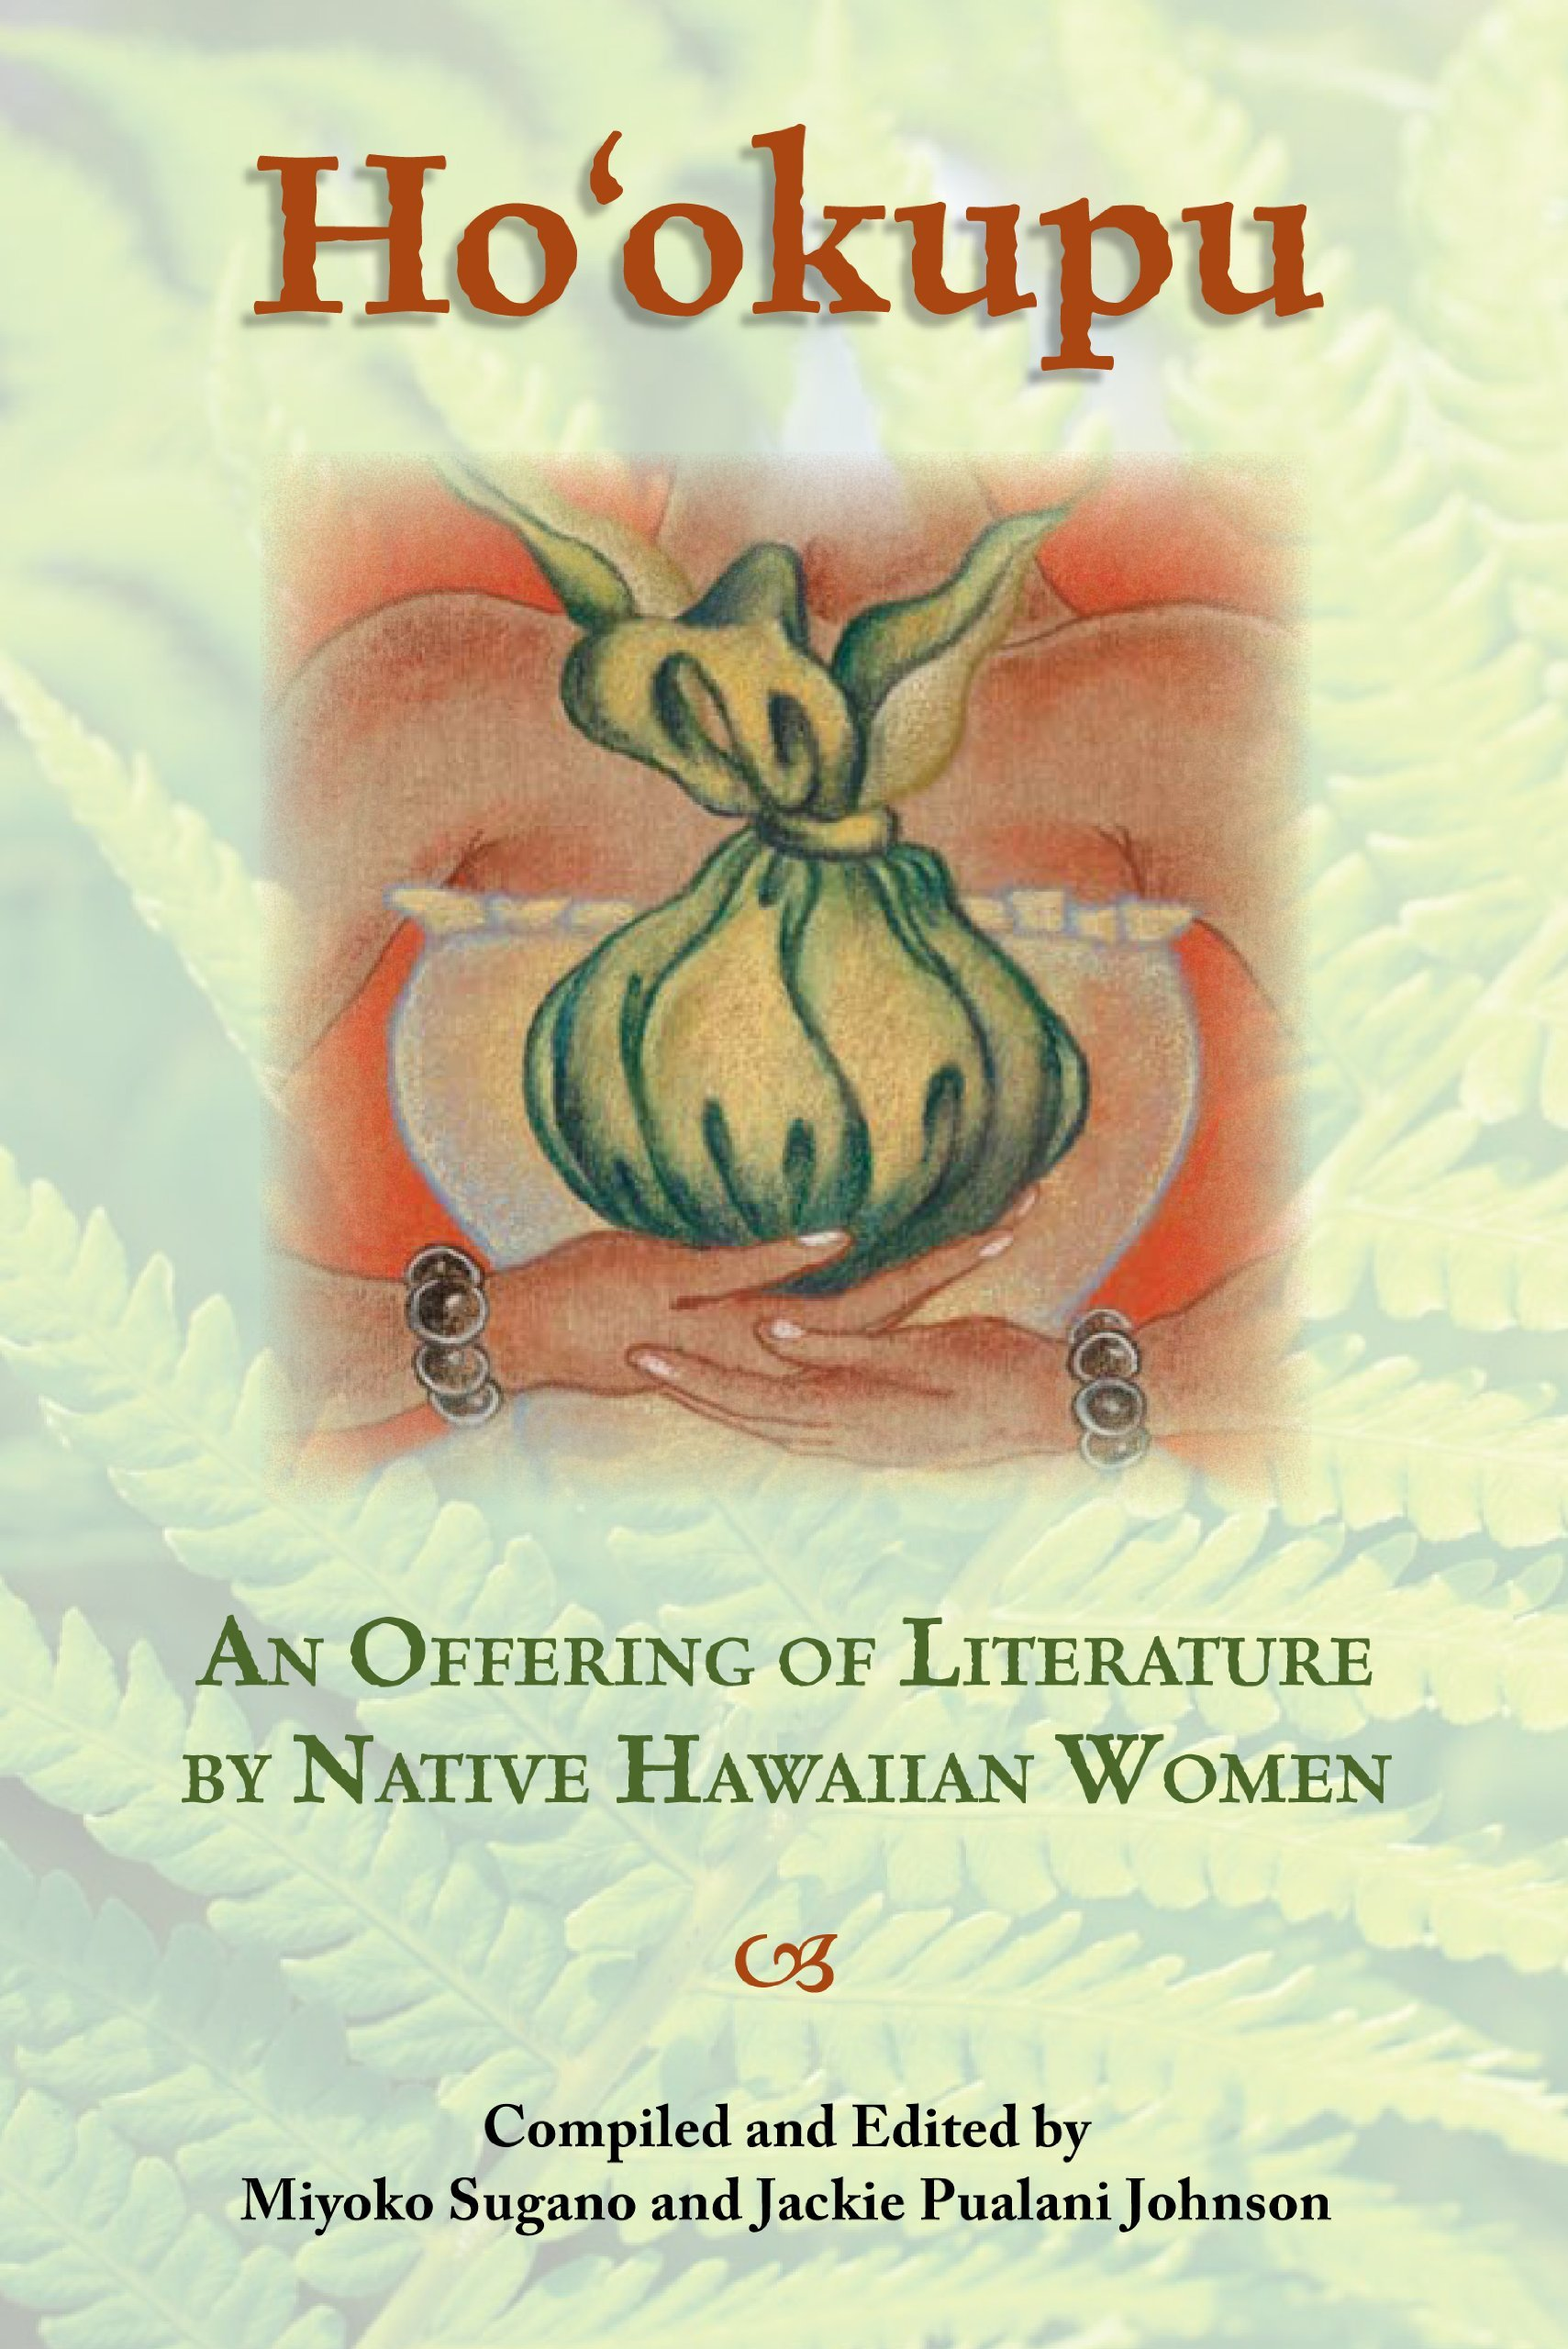 Ho'okupu: An Offering of Literature written by Miyoko Sugano